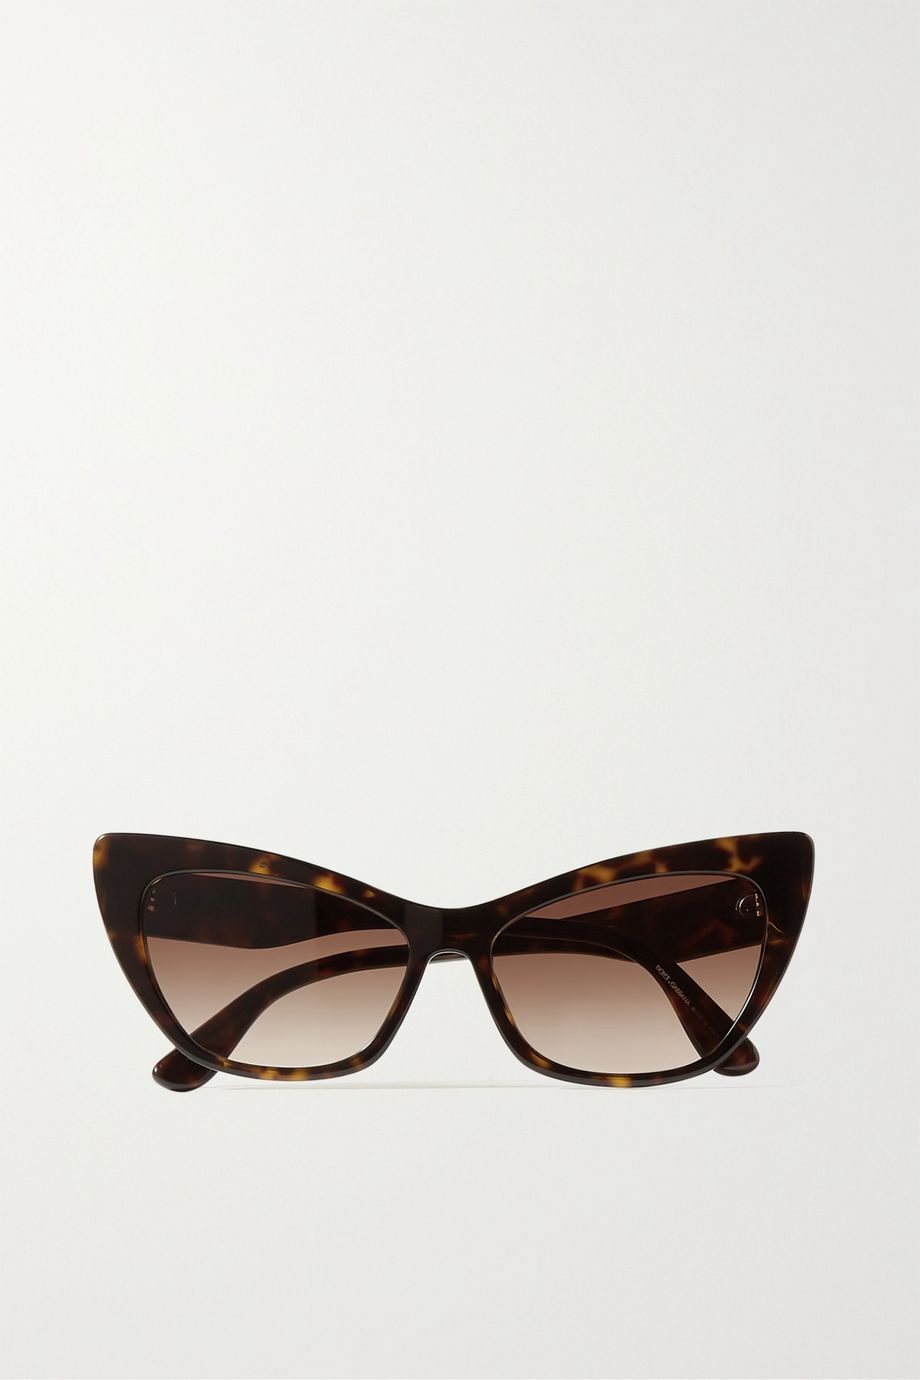 Dolce & Gabbana Cat-eye tortoiseshell acetate sunglasses